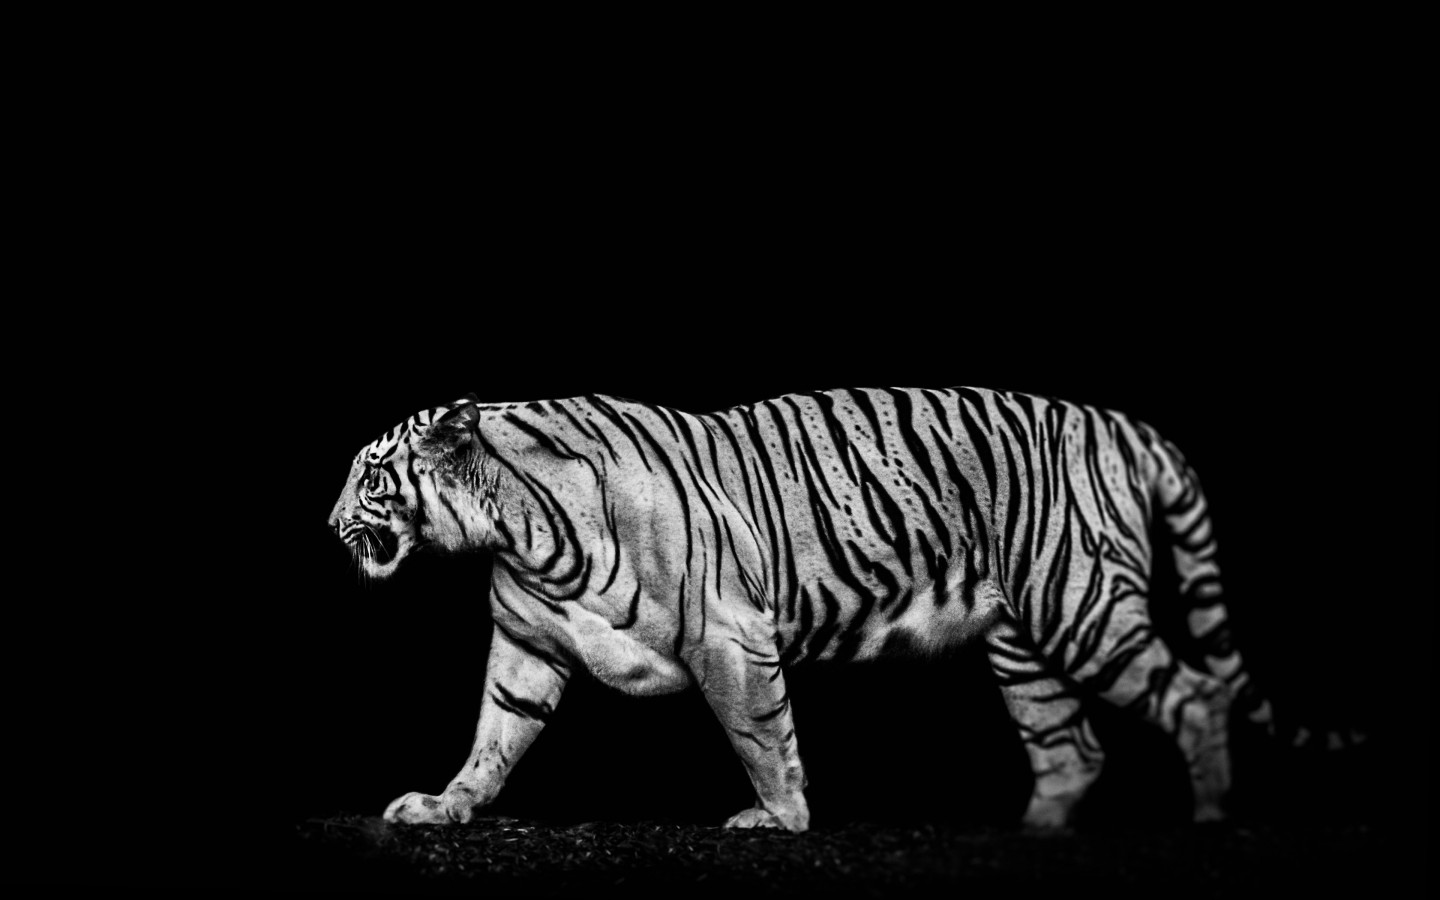 Tiger in the darkness | 1440x900 wallpaper